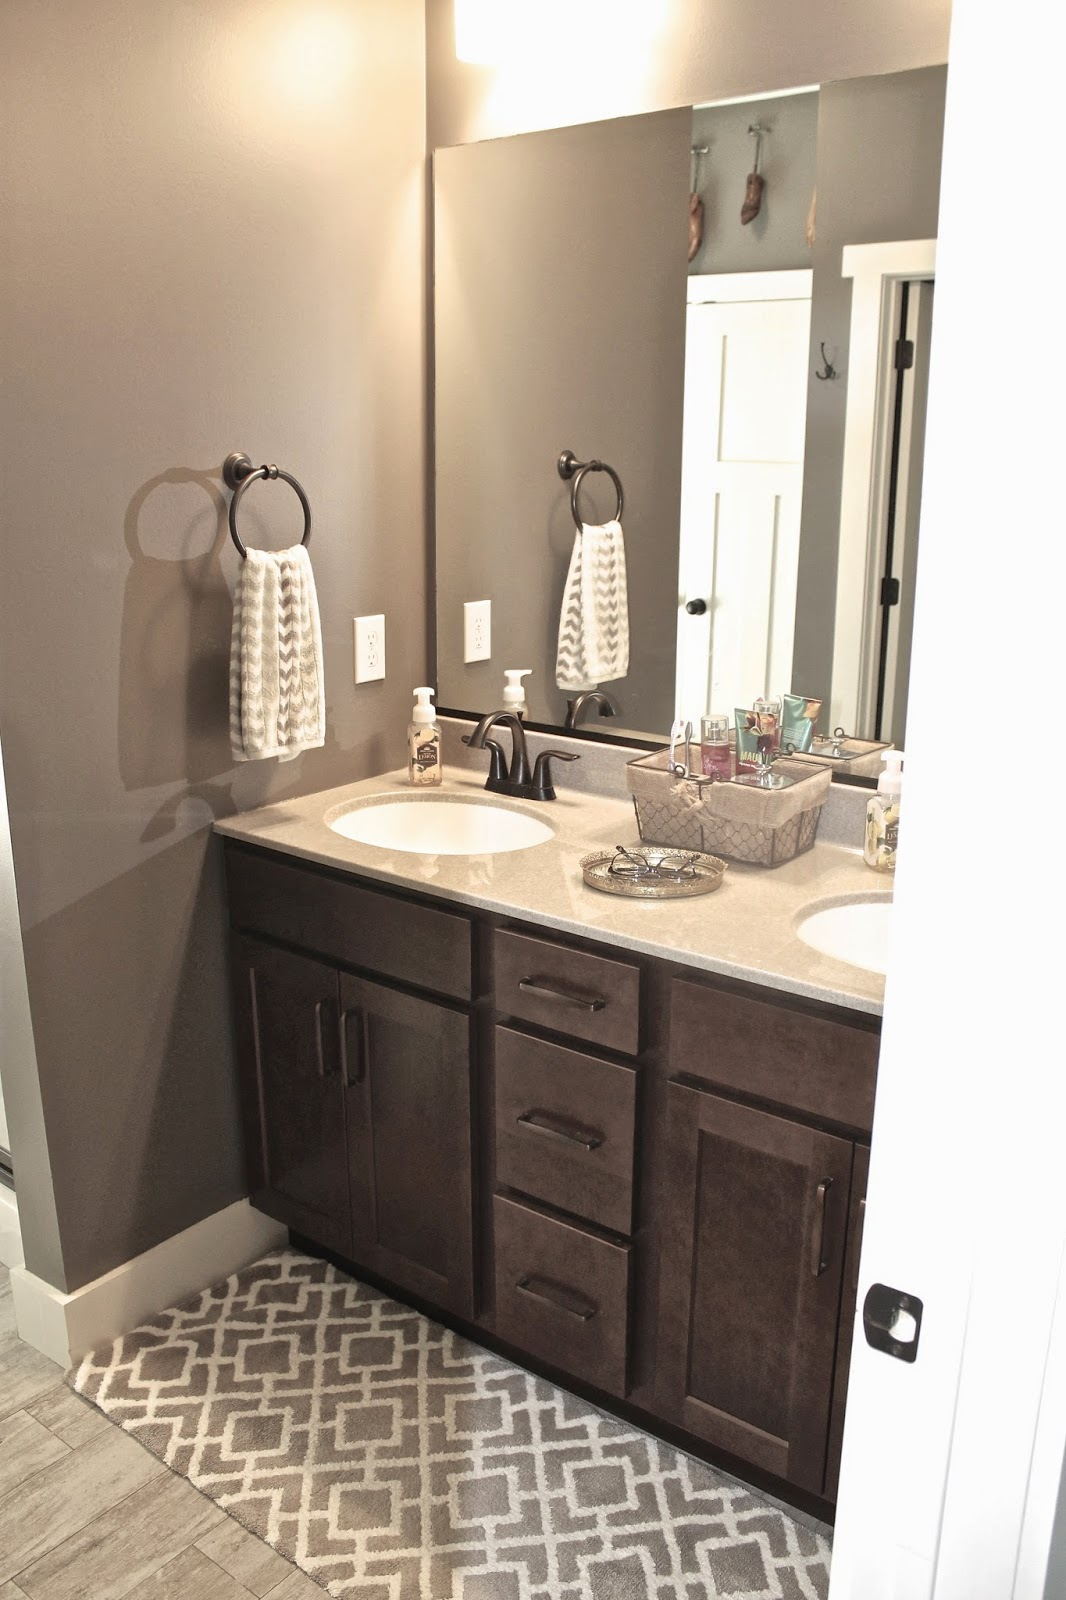 Mink and dover white favorite paint colors blog What color to paint a small bathroom